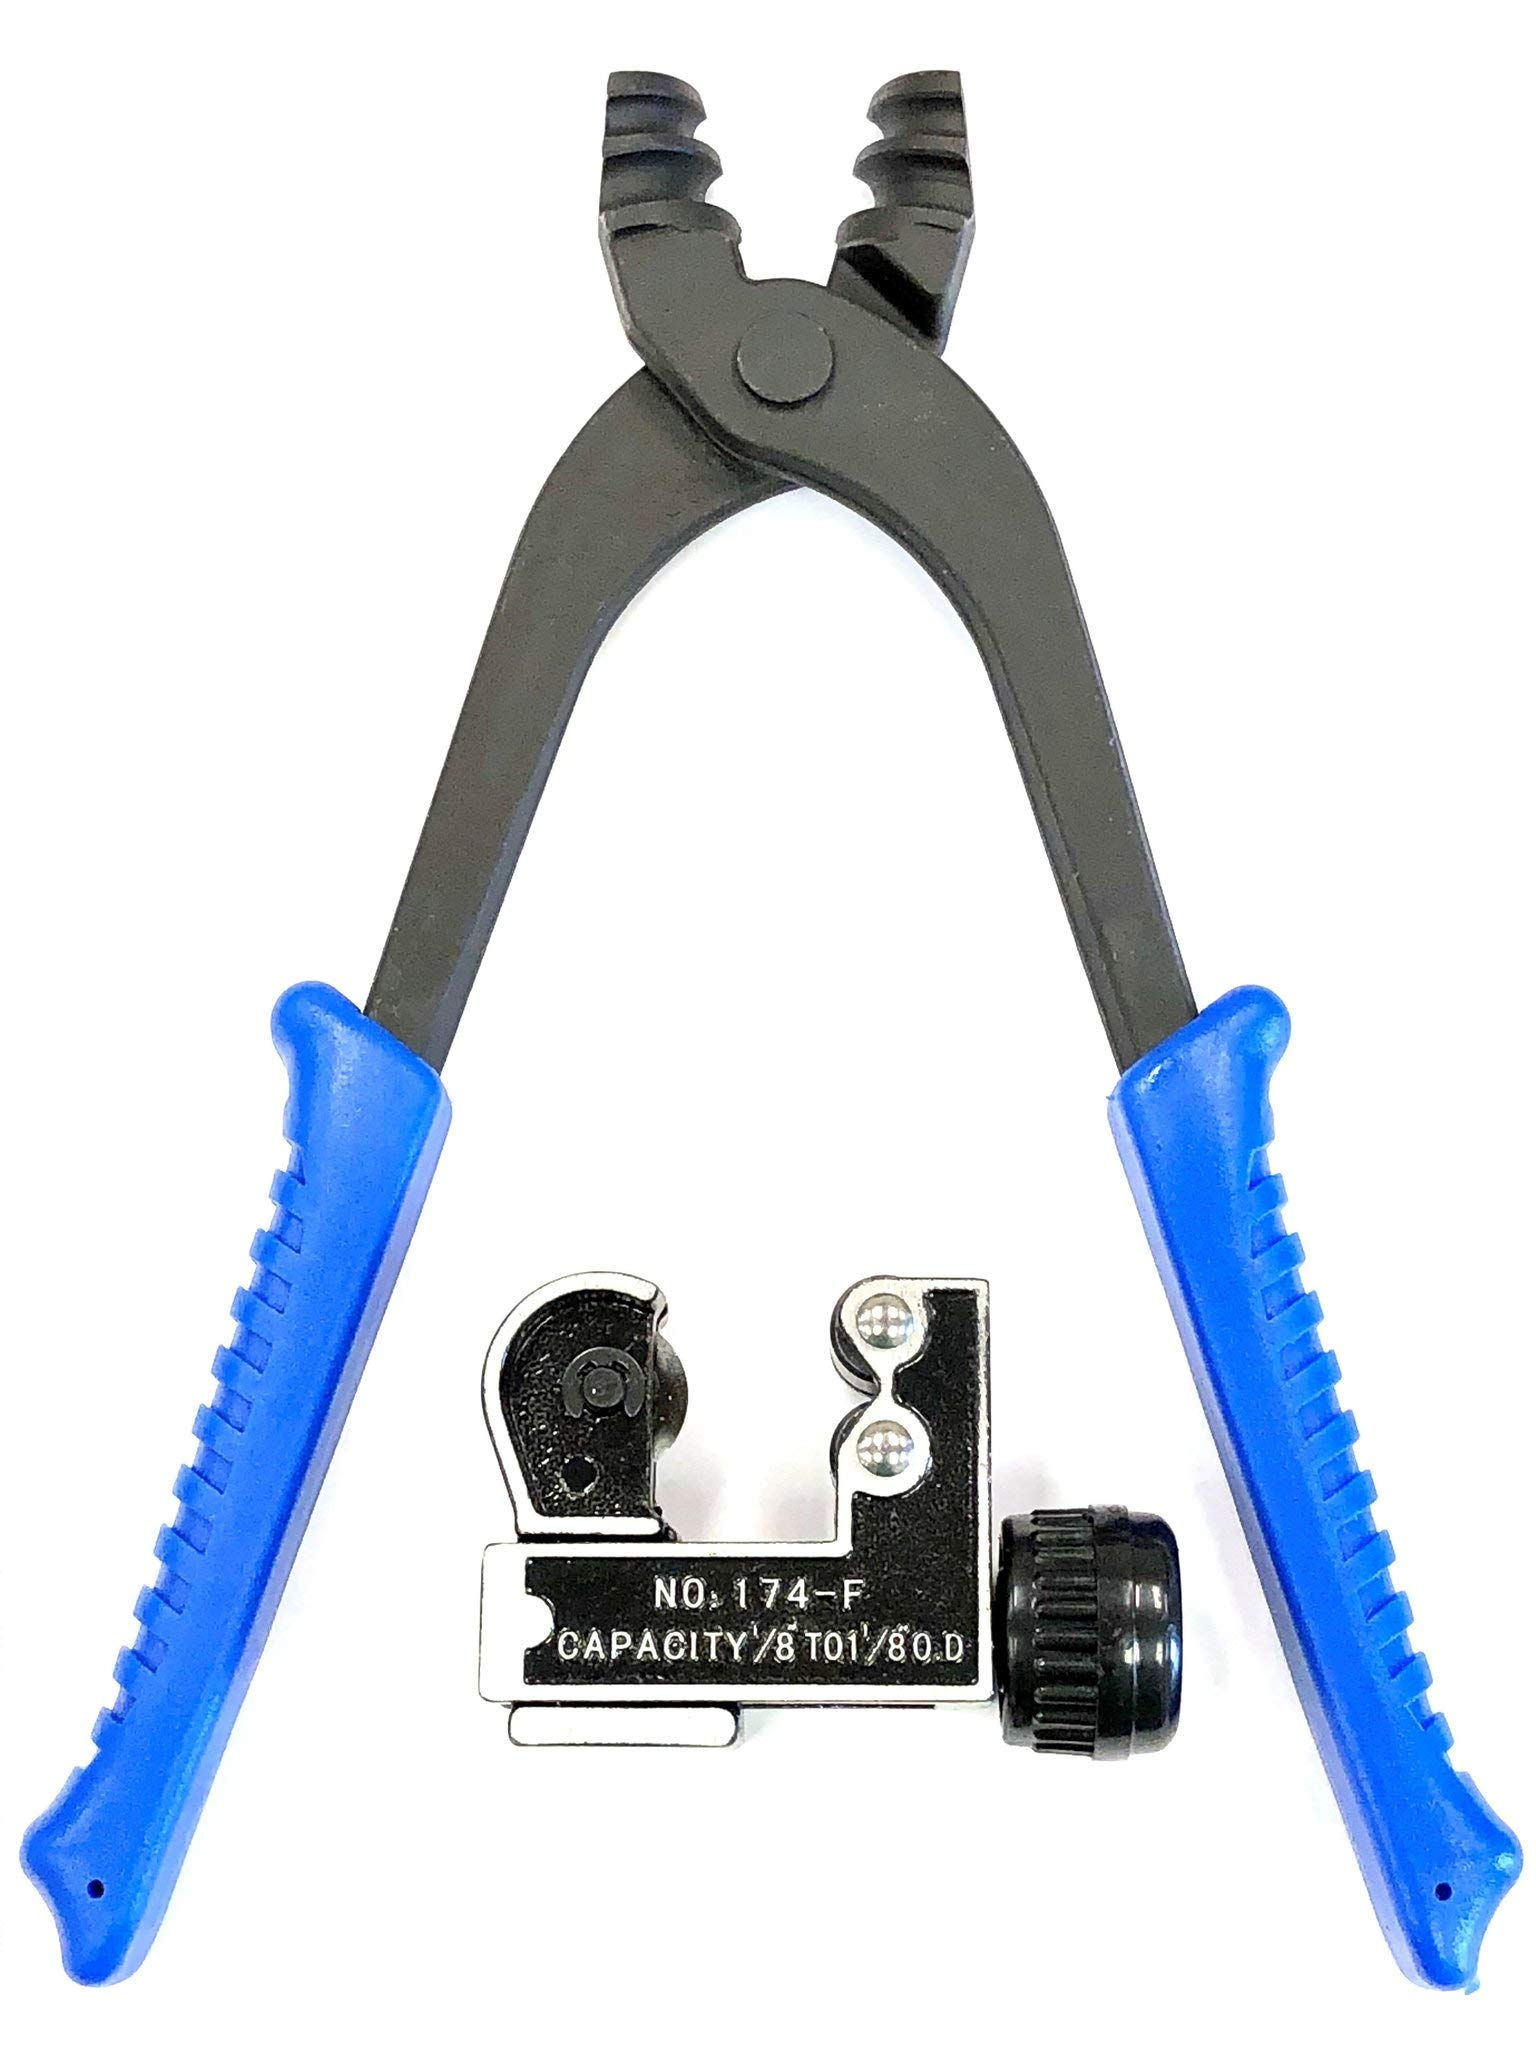 Automotive brake line pliers for 3/16'' & 1/4'' tubing with tube cutter